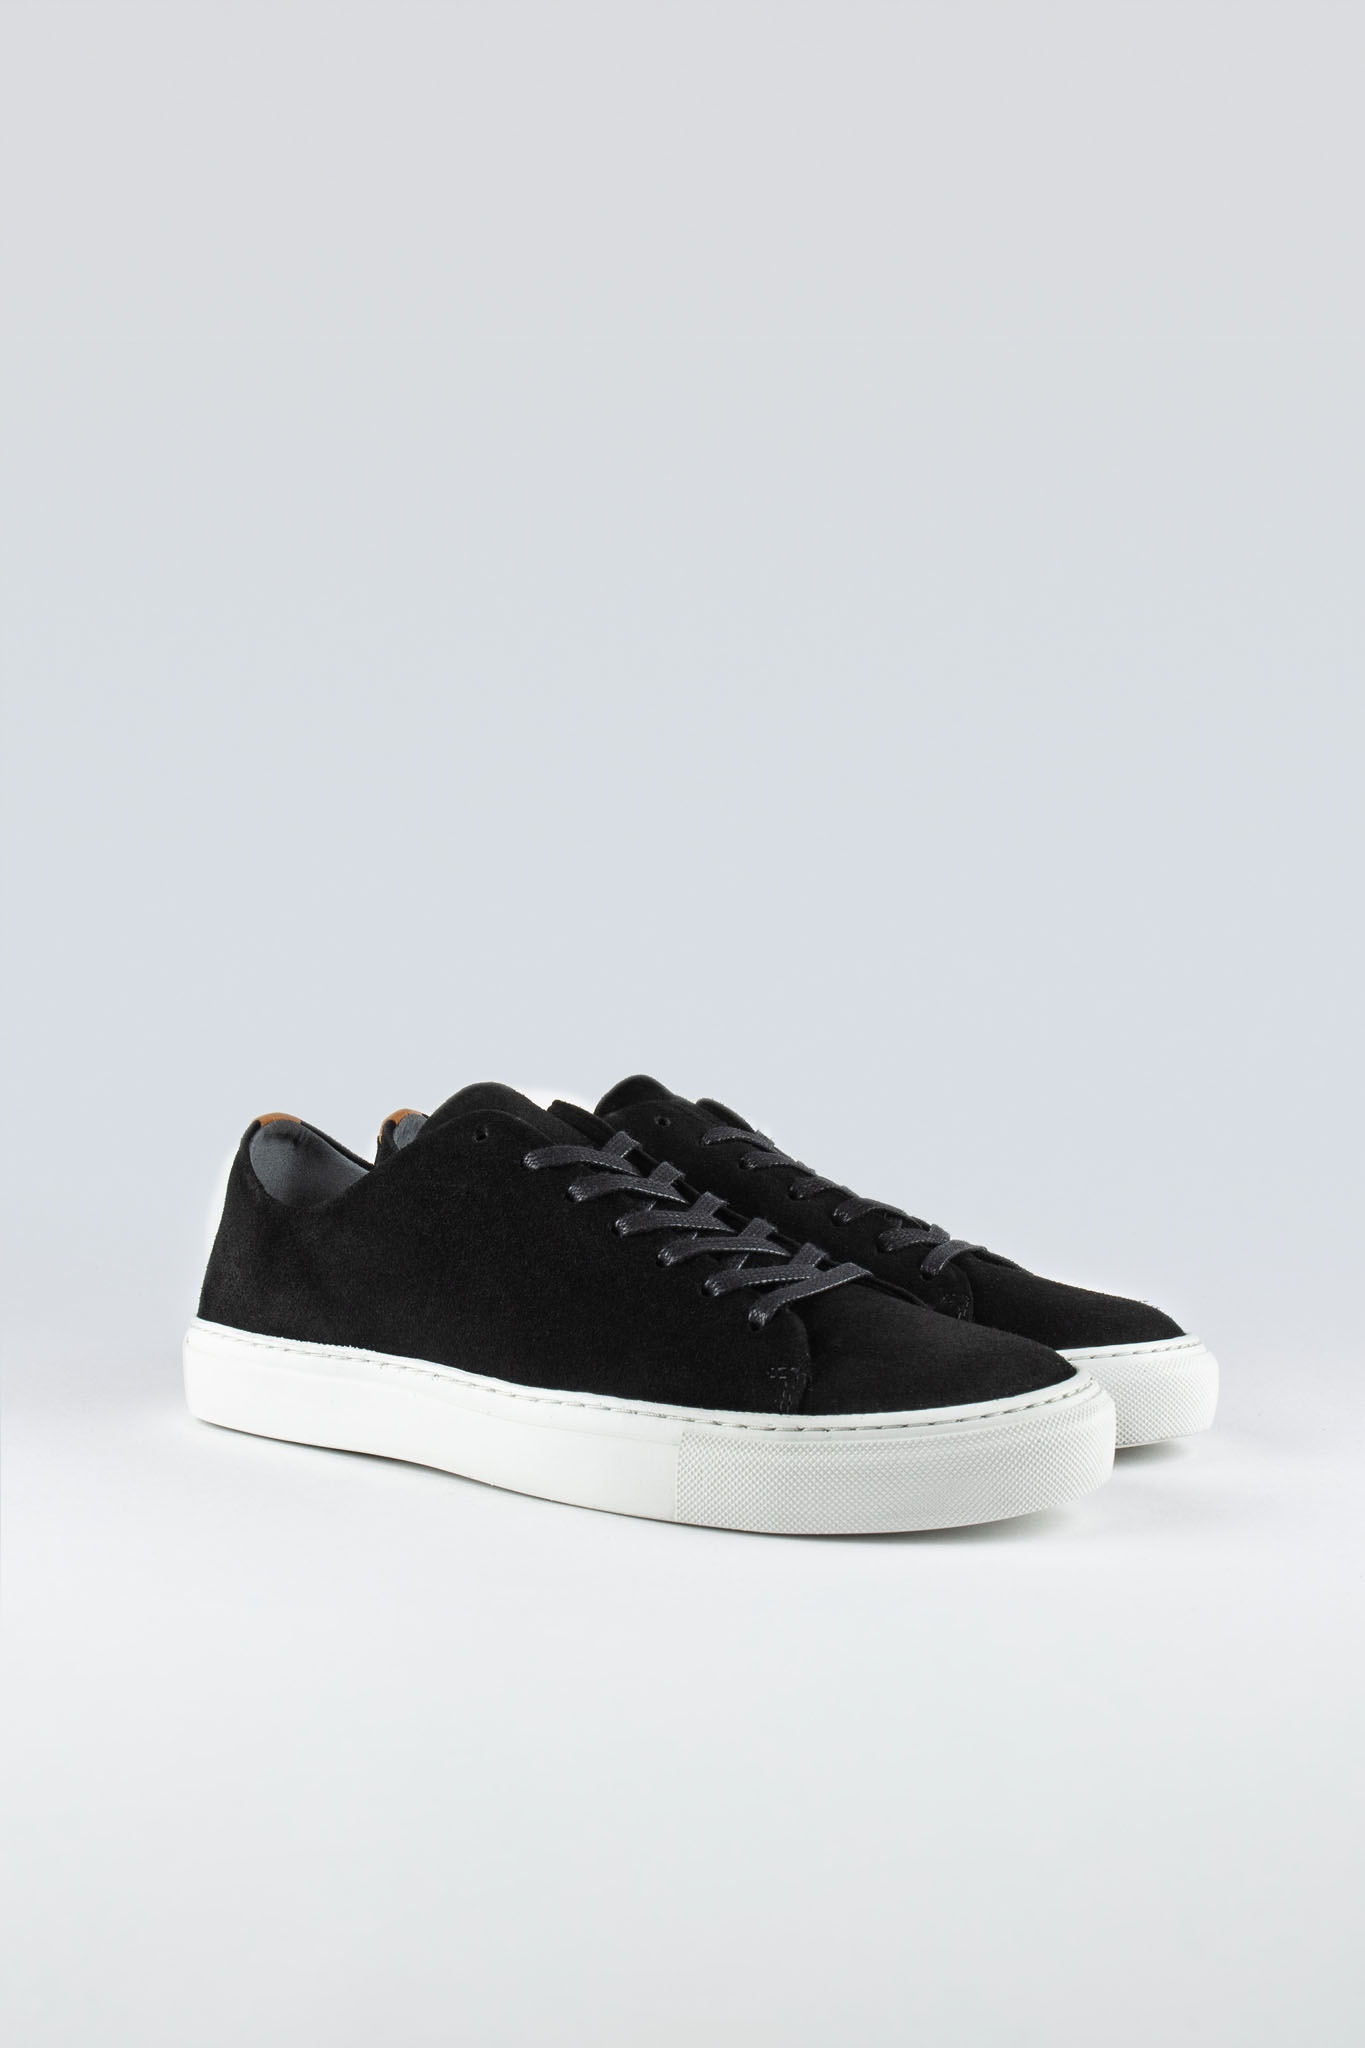 Less Suede Black